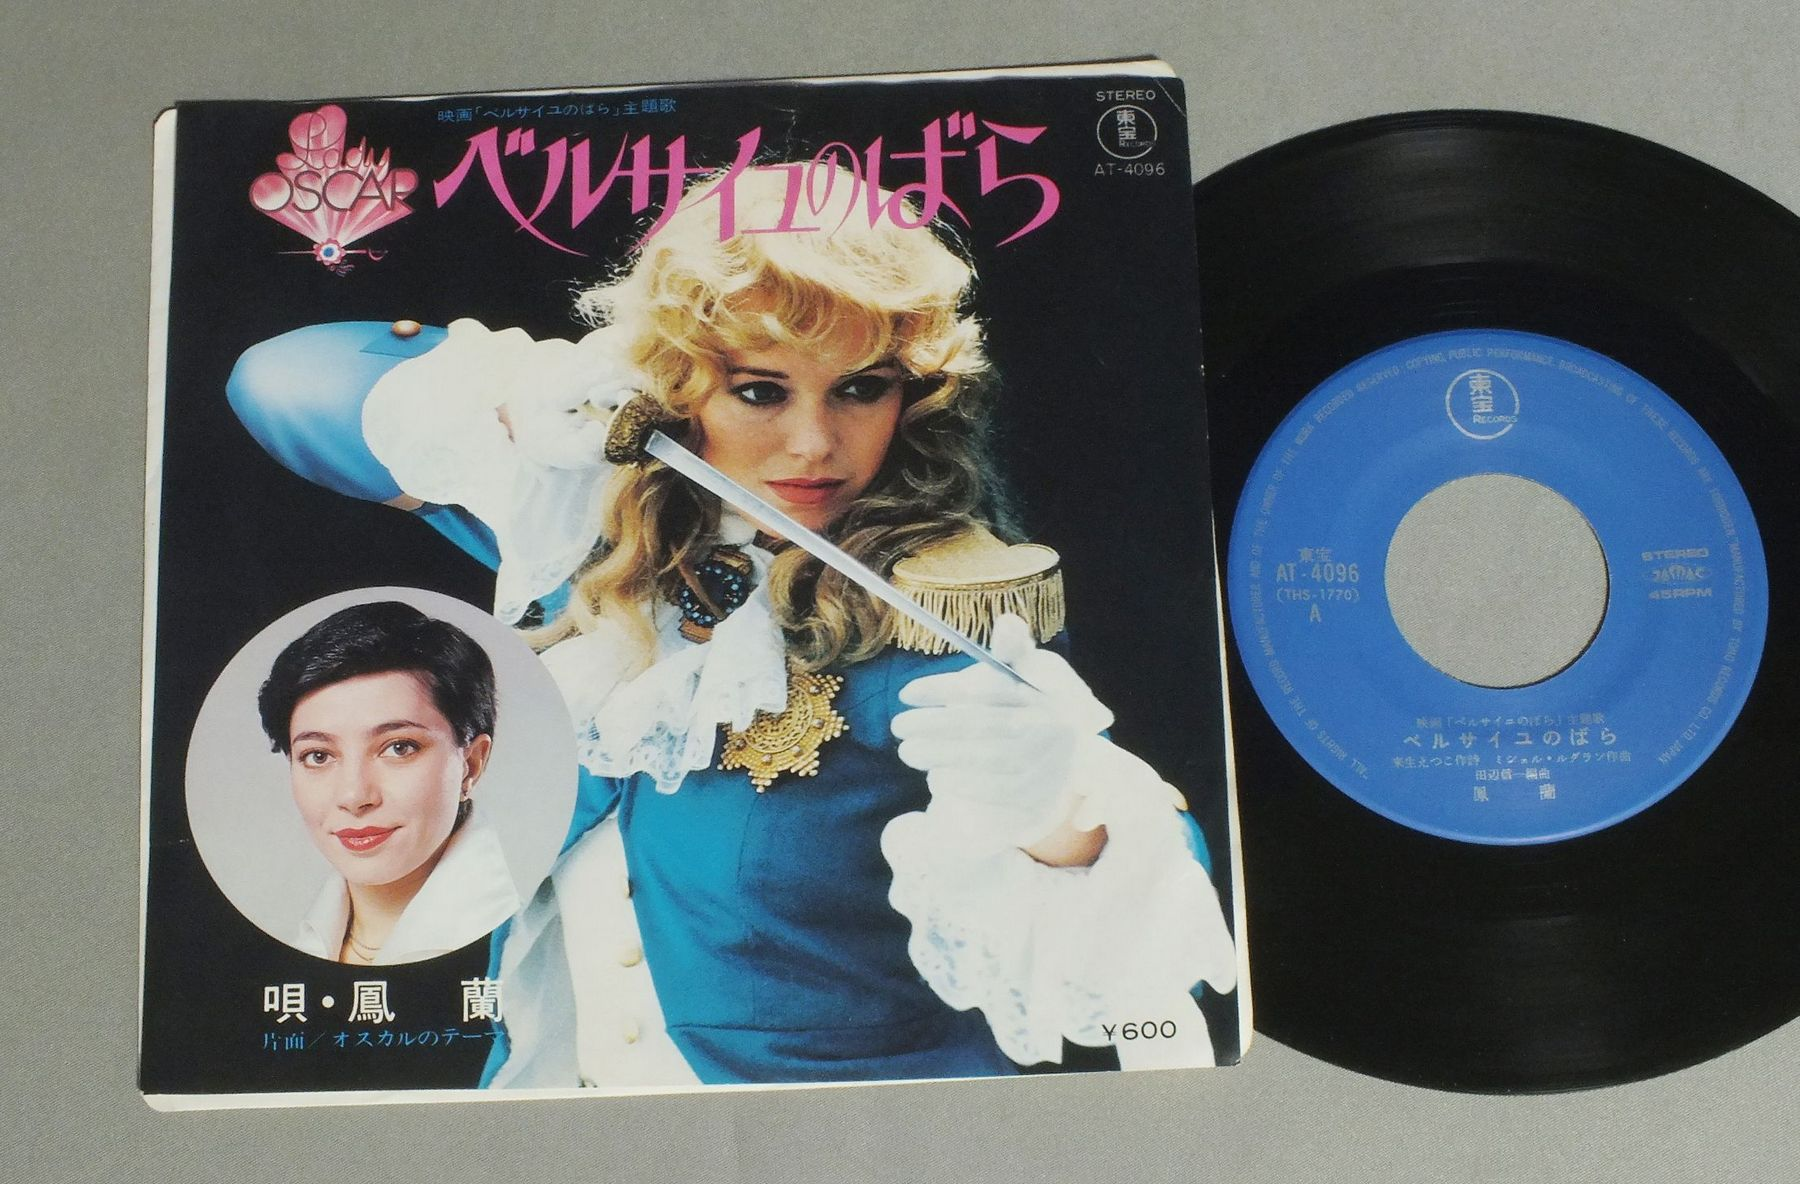 OHRAN - SOUNDTRACK THE ROSE OF THE PALACE OF VERSAILLES - 45T x 1